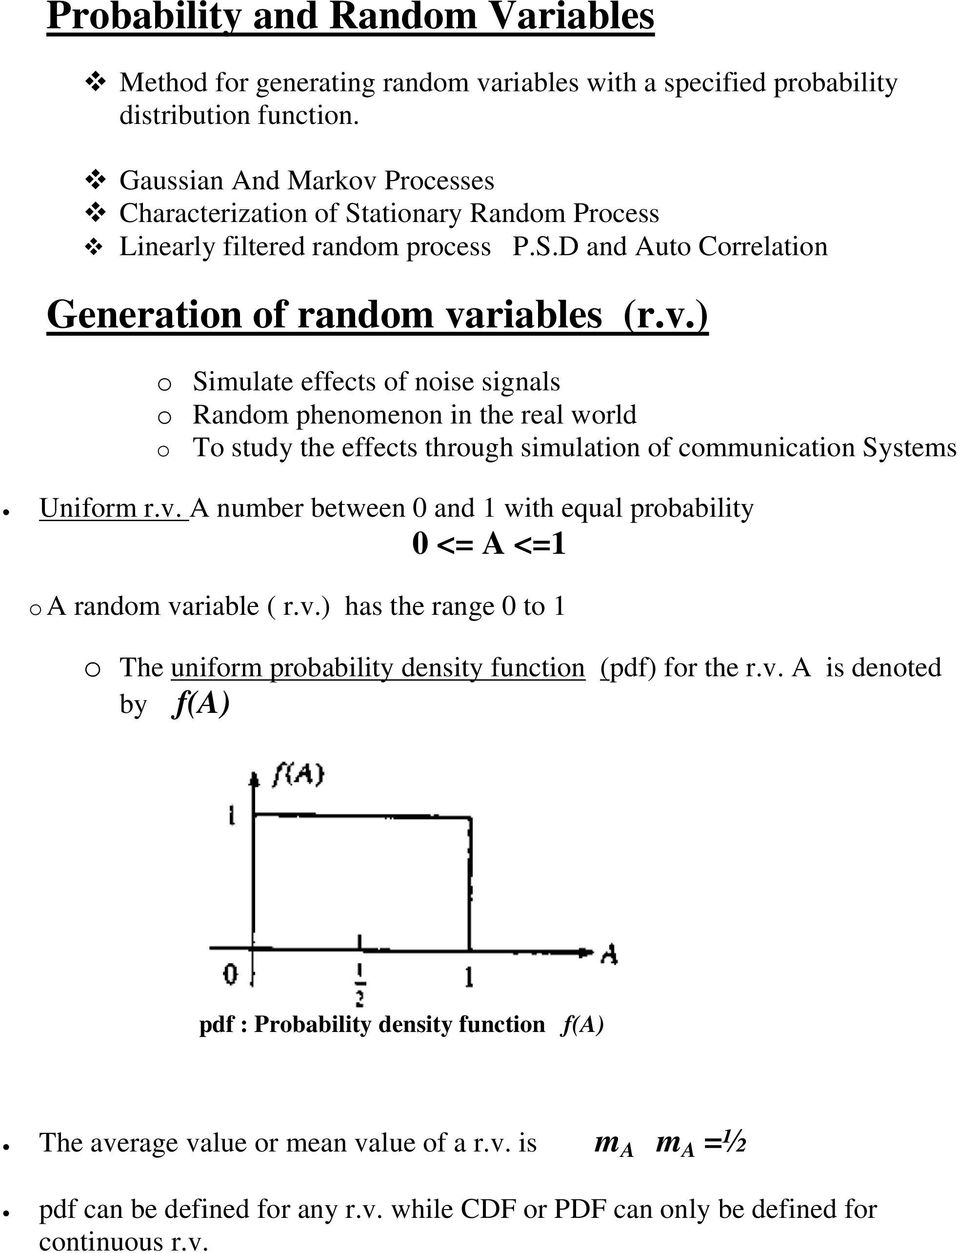 v. A number between 0 and 1 with equal probability 0 <= A <=1 o A random variable ( r.v.) has the range 0 to 1 o The uniform probability density function (pdf) for the r.v. A is denoted by f(a) pdf : Probability density function f(a) The average value or mean value of a r.